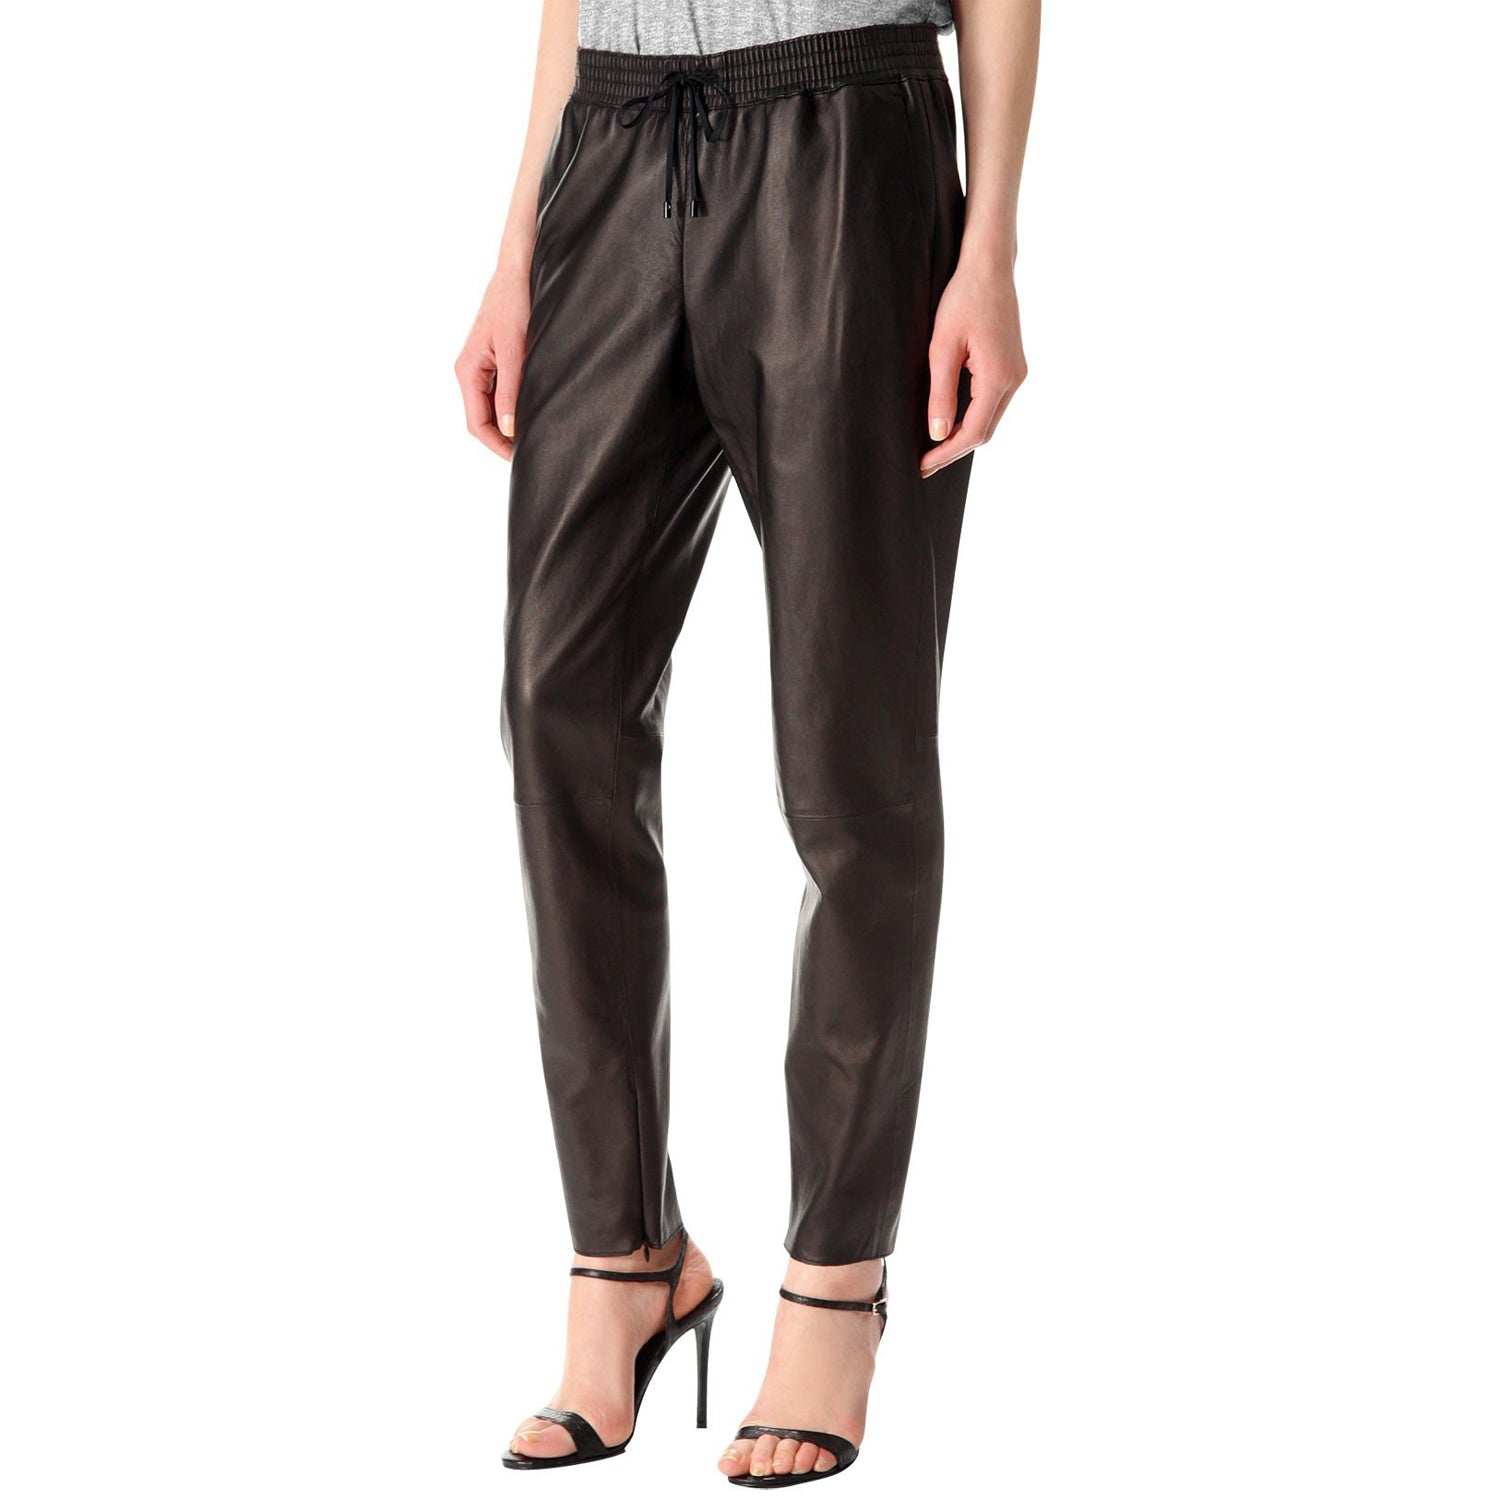 Brown leather pants with elastic waist (style #5) - Lusso Leather - 1